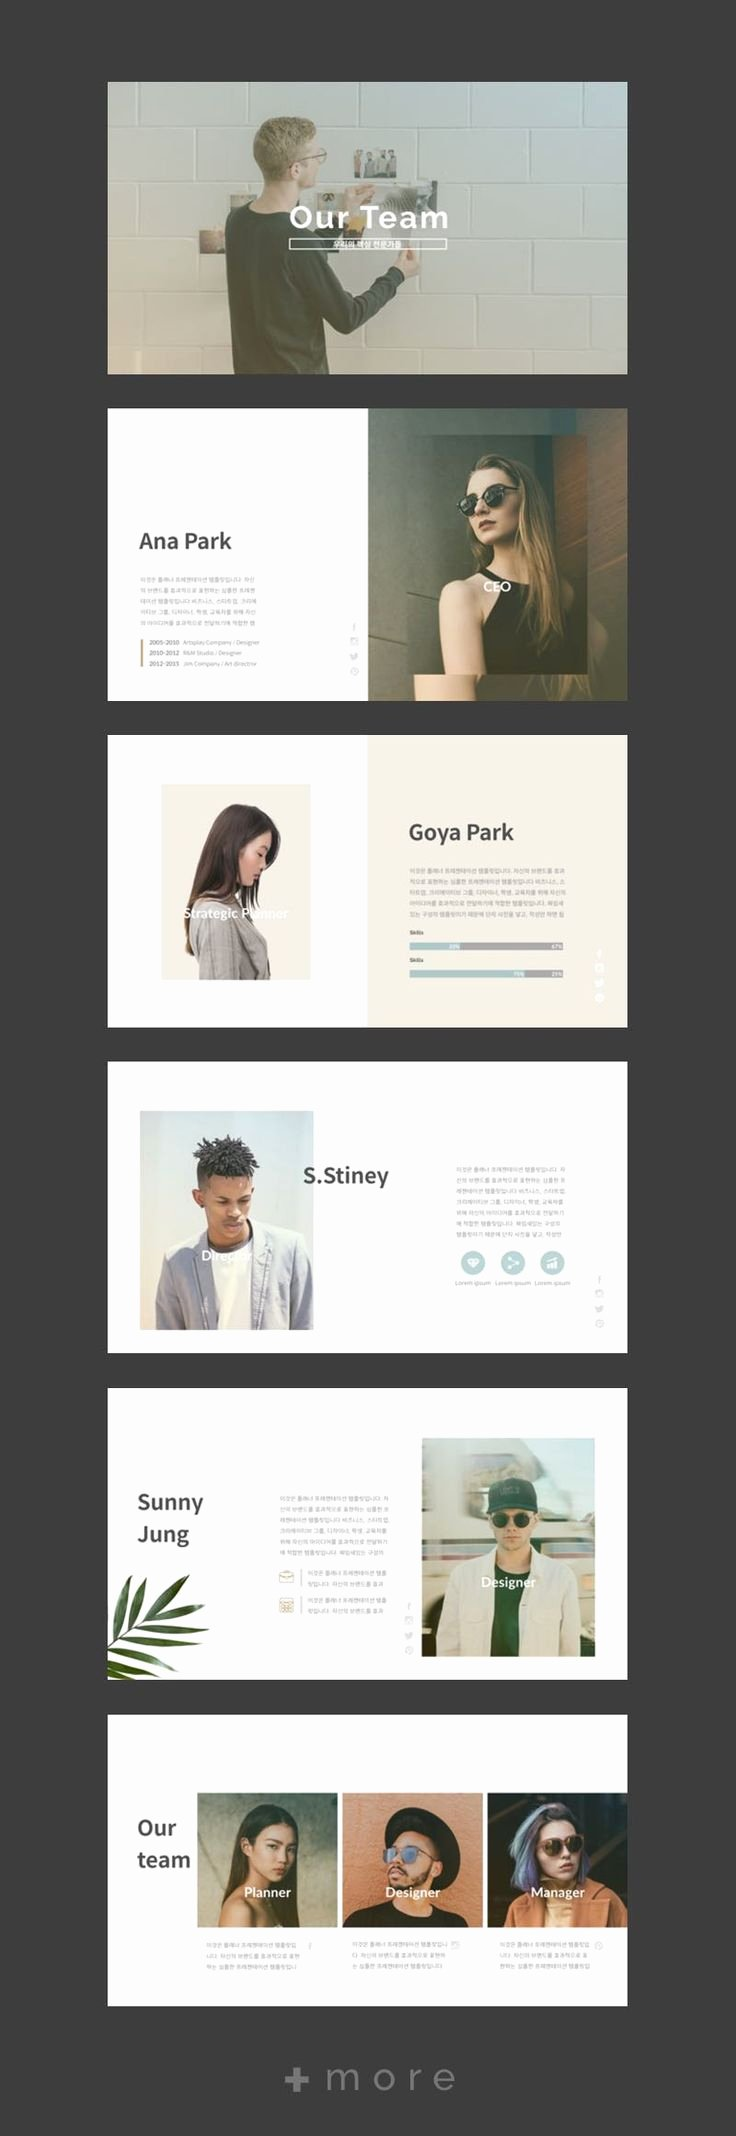 Yearbook Template Powerpoint Awesome Best 25 Yearbook Template Ideas On Pinterest